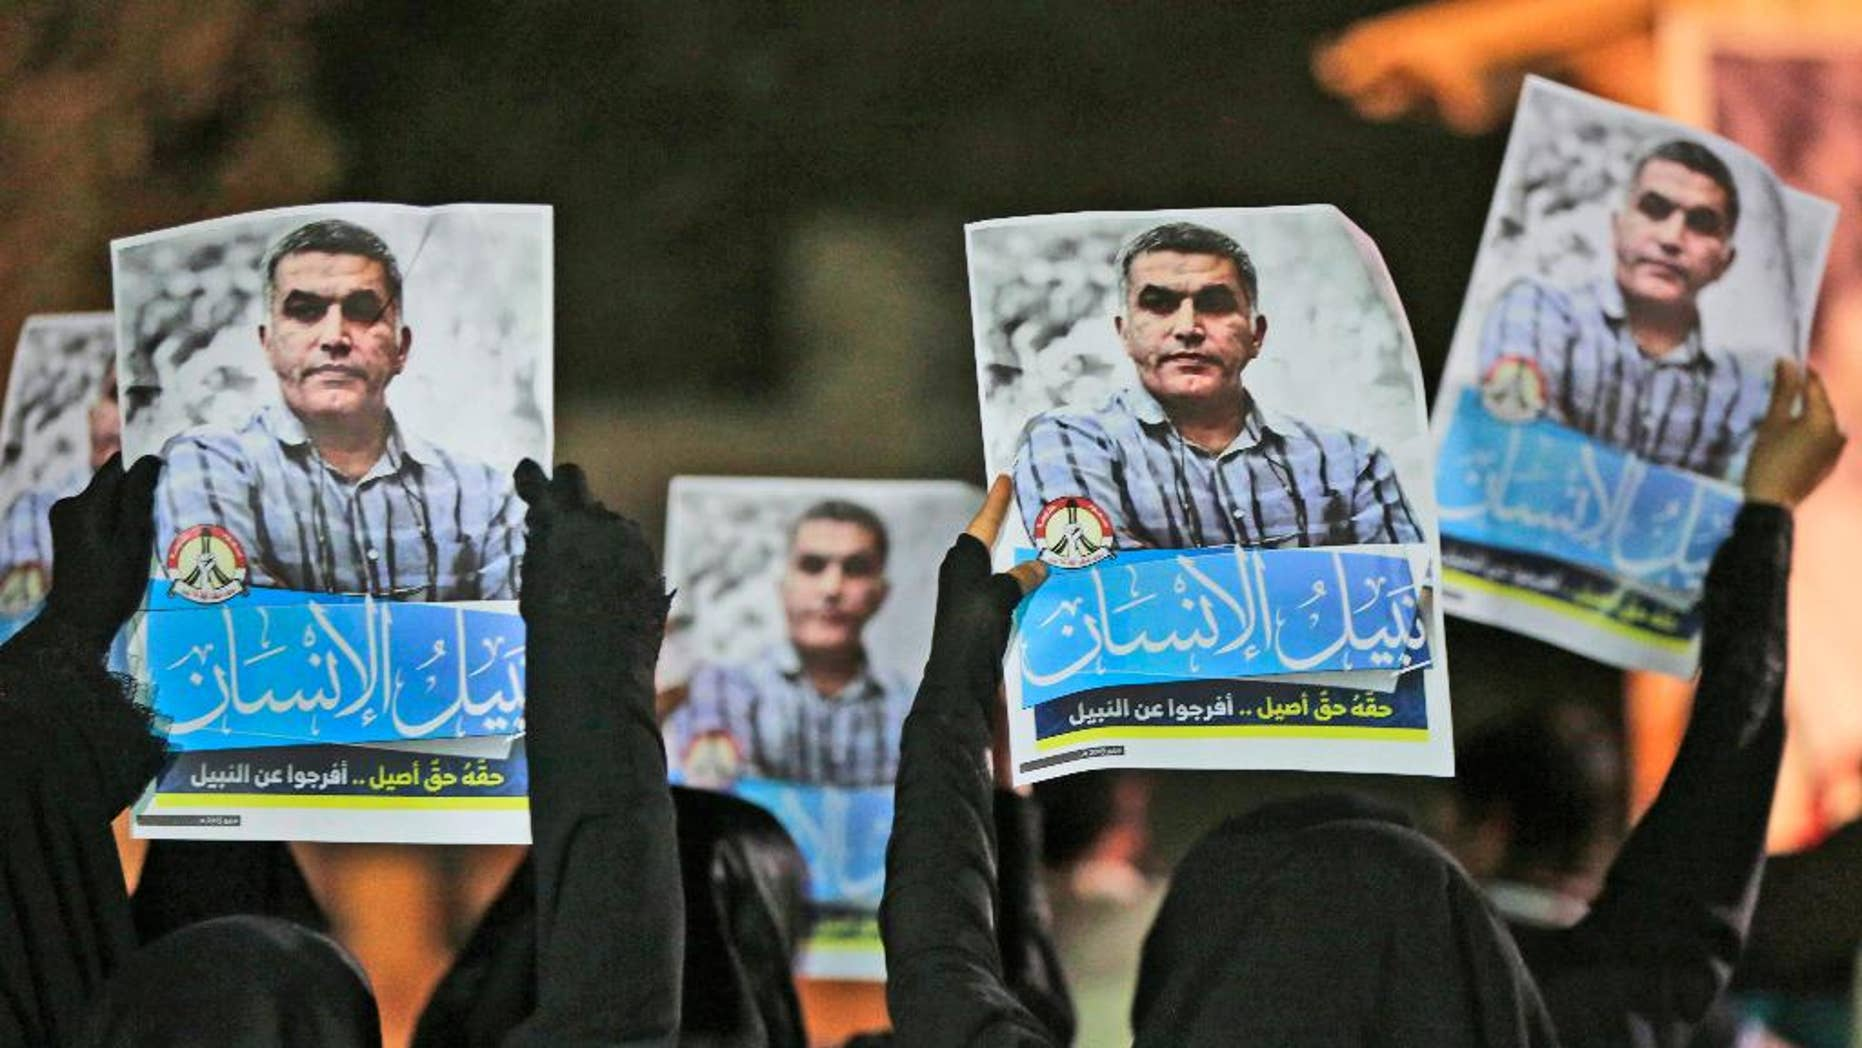 """FILE- In this Thursday, May 14, 2015 file photo, Bahraini anti-government protesters hold up images of jailed human rights activist Nabeel Rajab during a solidarity protest outside his home in Bani Jamra, Bahrain. A jailed activist in Bahrain on trial for allegedly spreading """"false news"""" is being investigated over a letter published in his name by French newspaper. Bahrain's Interior Ministry issued a statement early Thursday, Dec. 22, 2016,  announcing the new probe focusing on Nabeel Rajab over the article published by Le Monde on Tuesday. (AP Photo/Hasan Jamali, File)"""